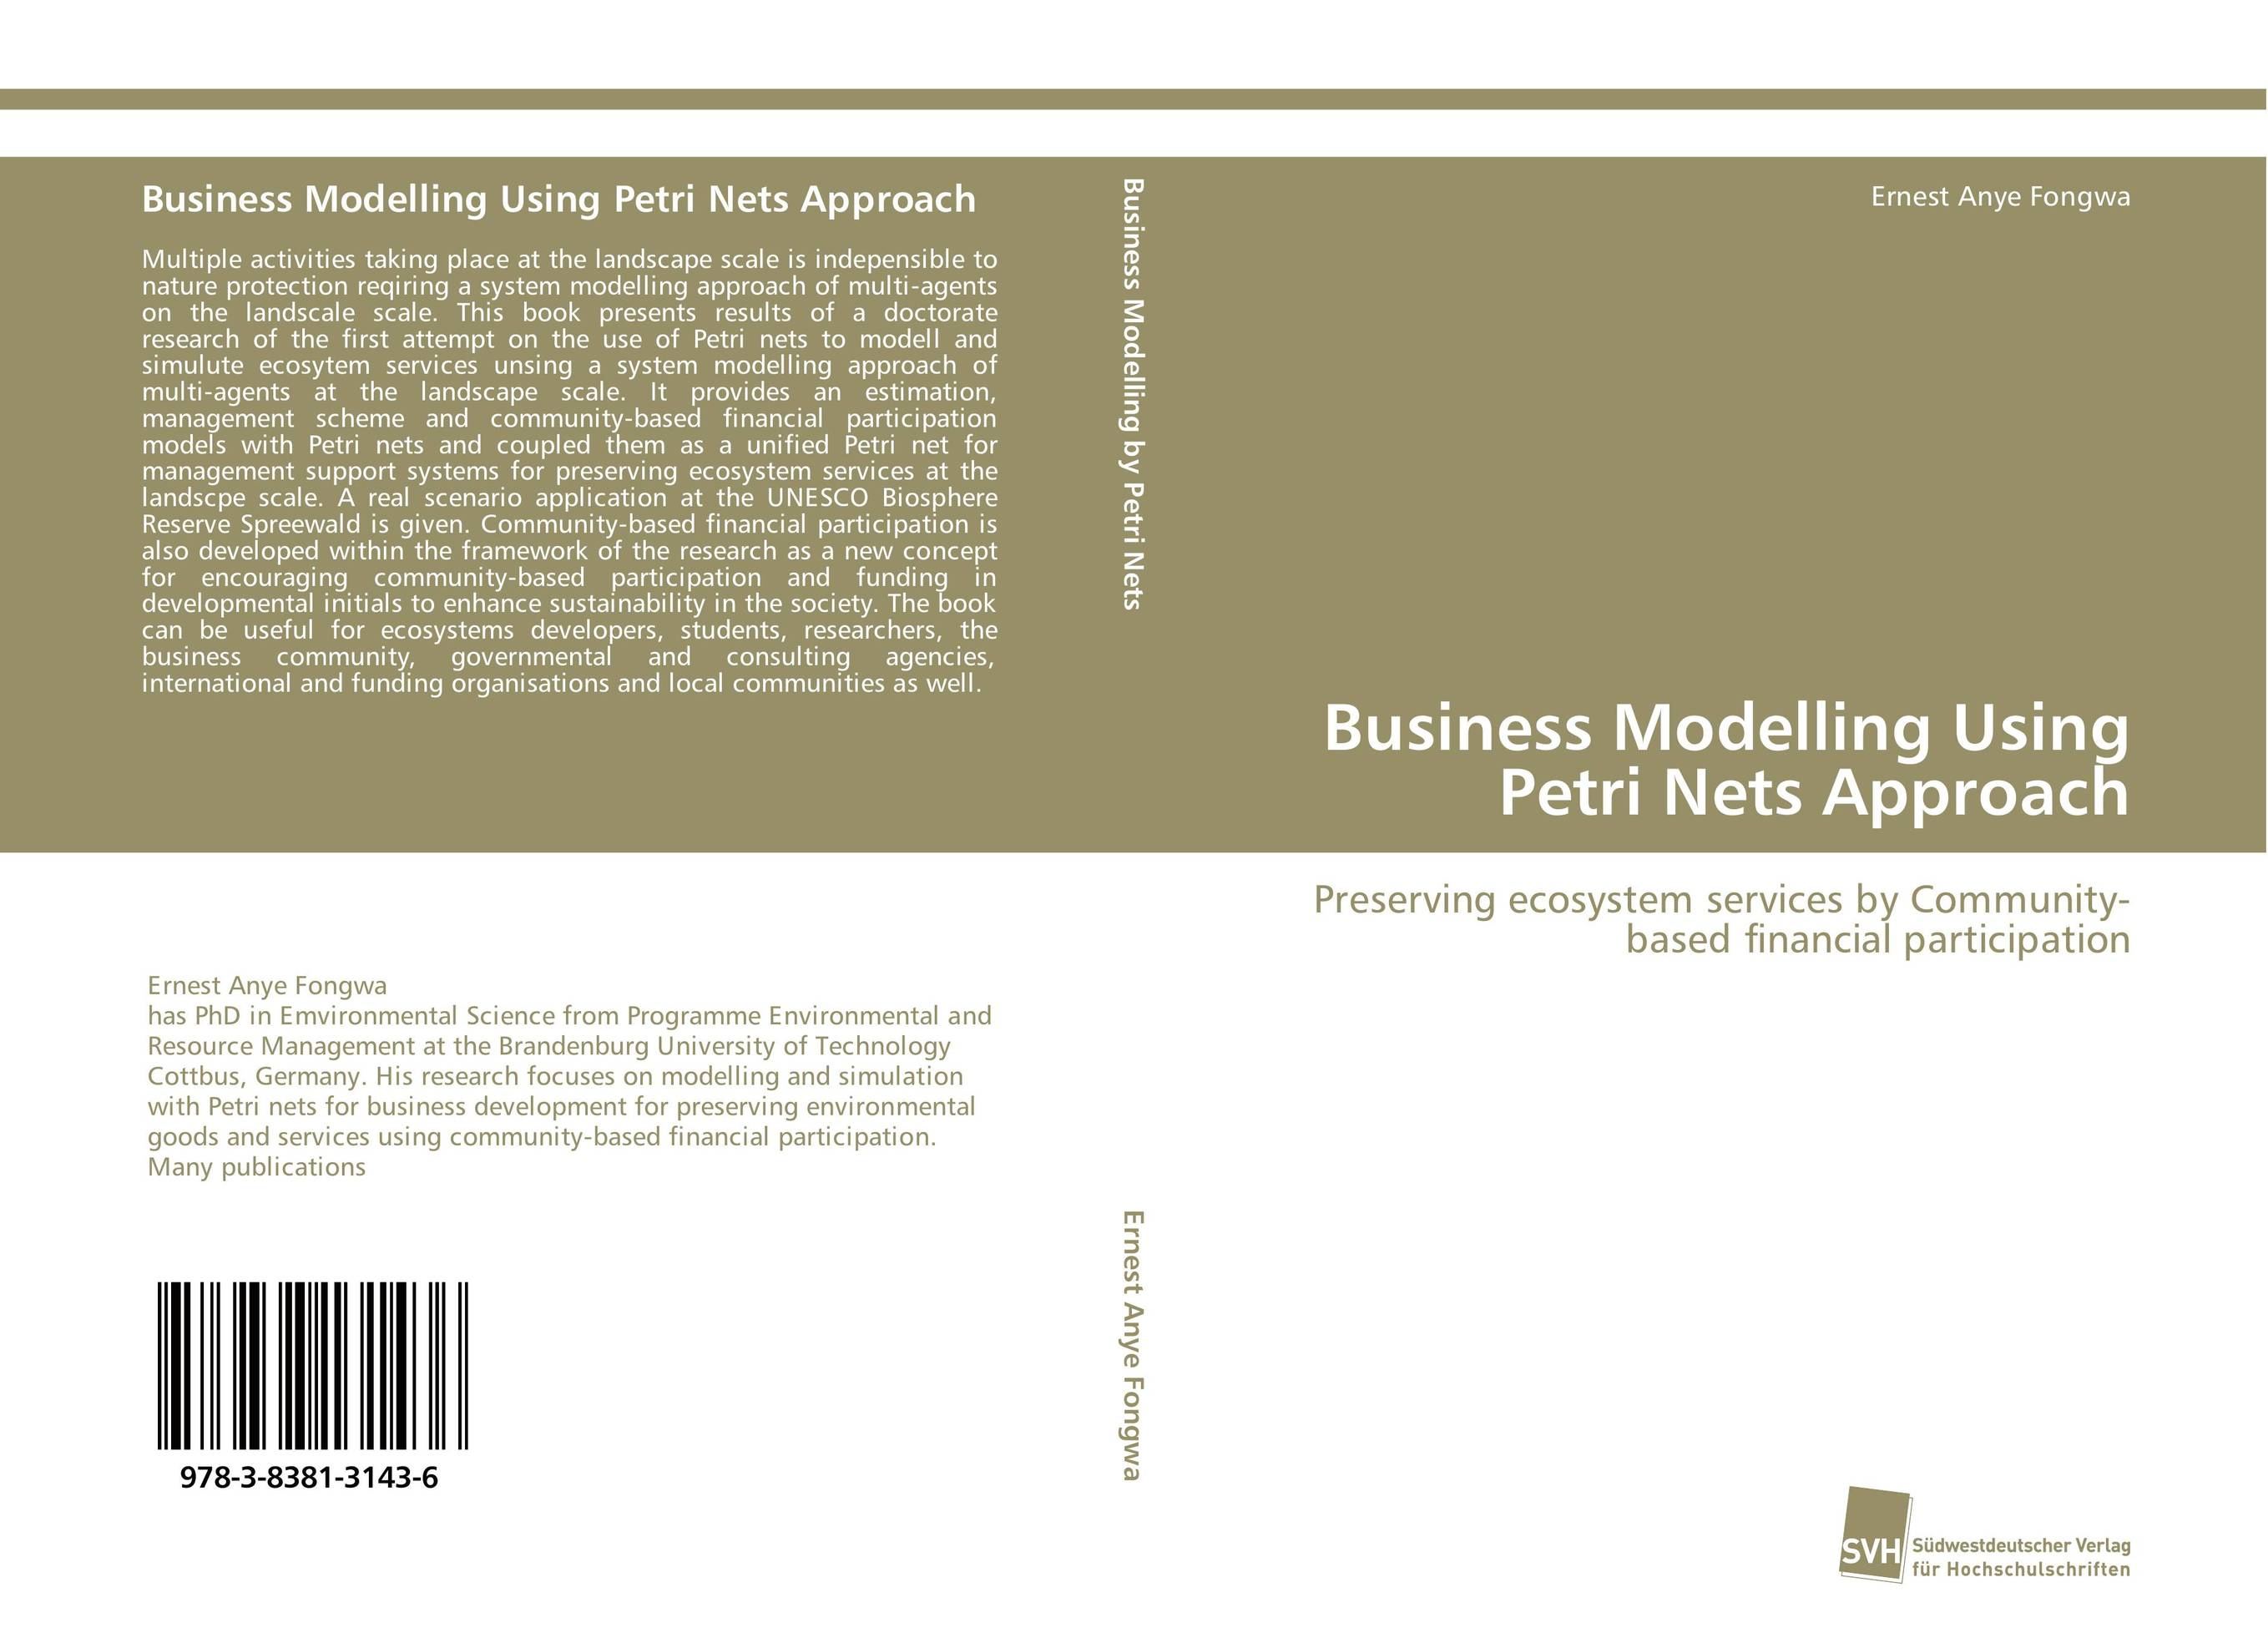 Business Modelling Using Petri Nets Approach a subspace approach for speech signal modelling and classification